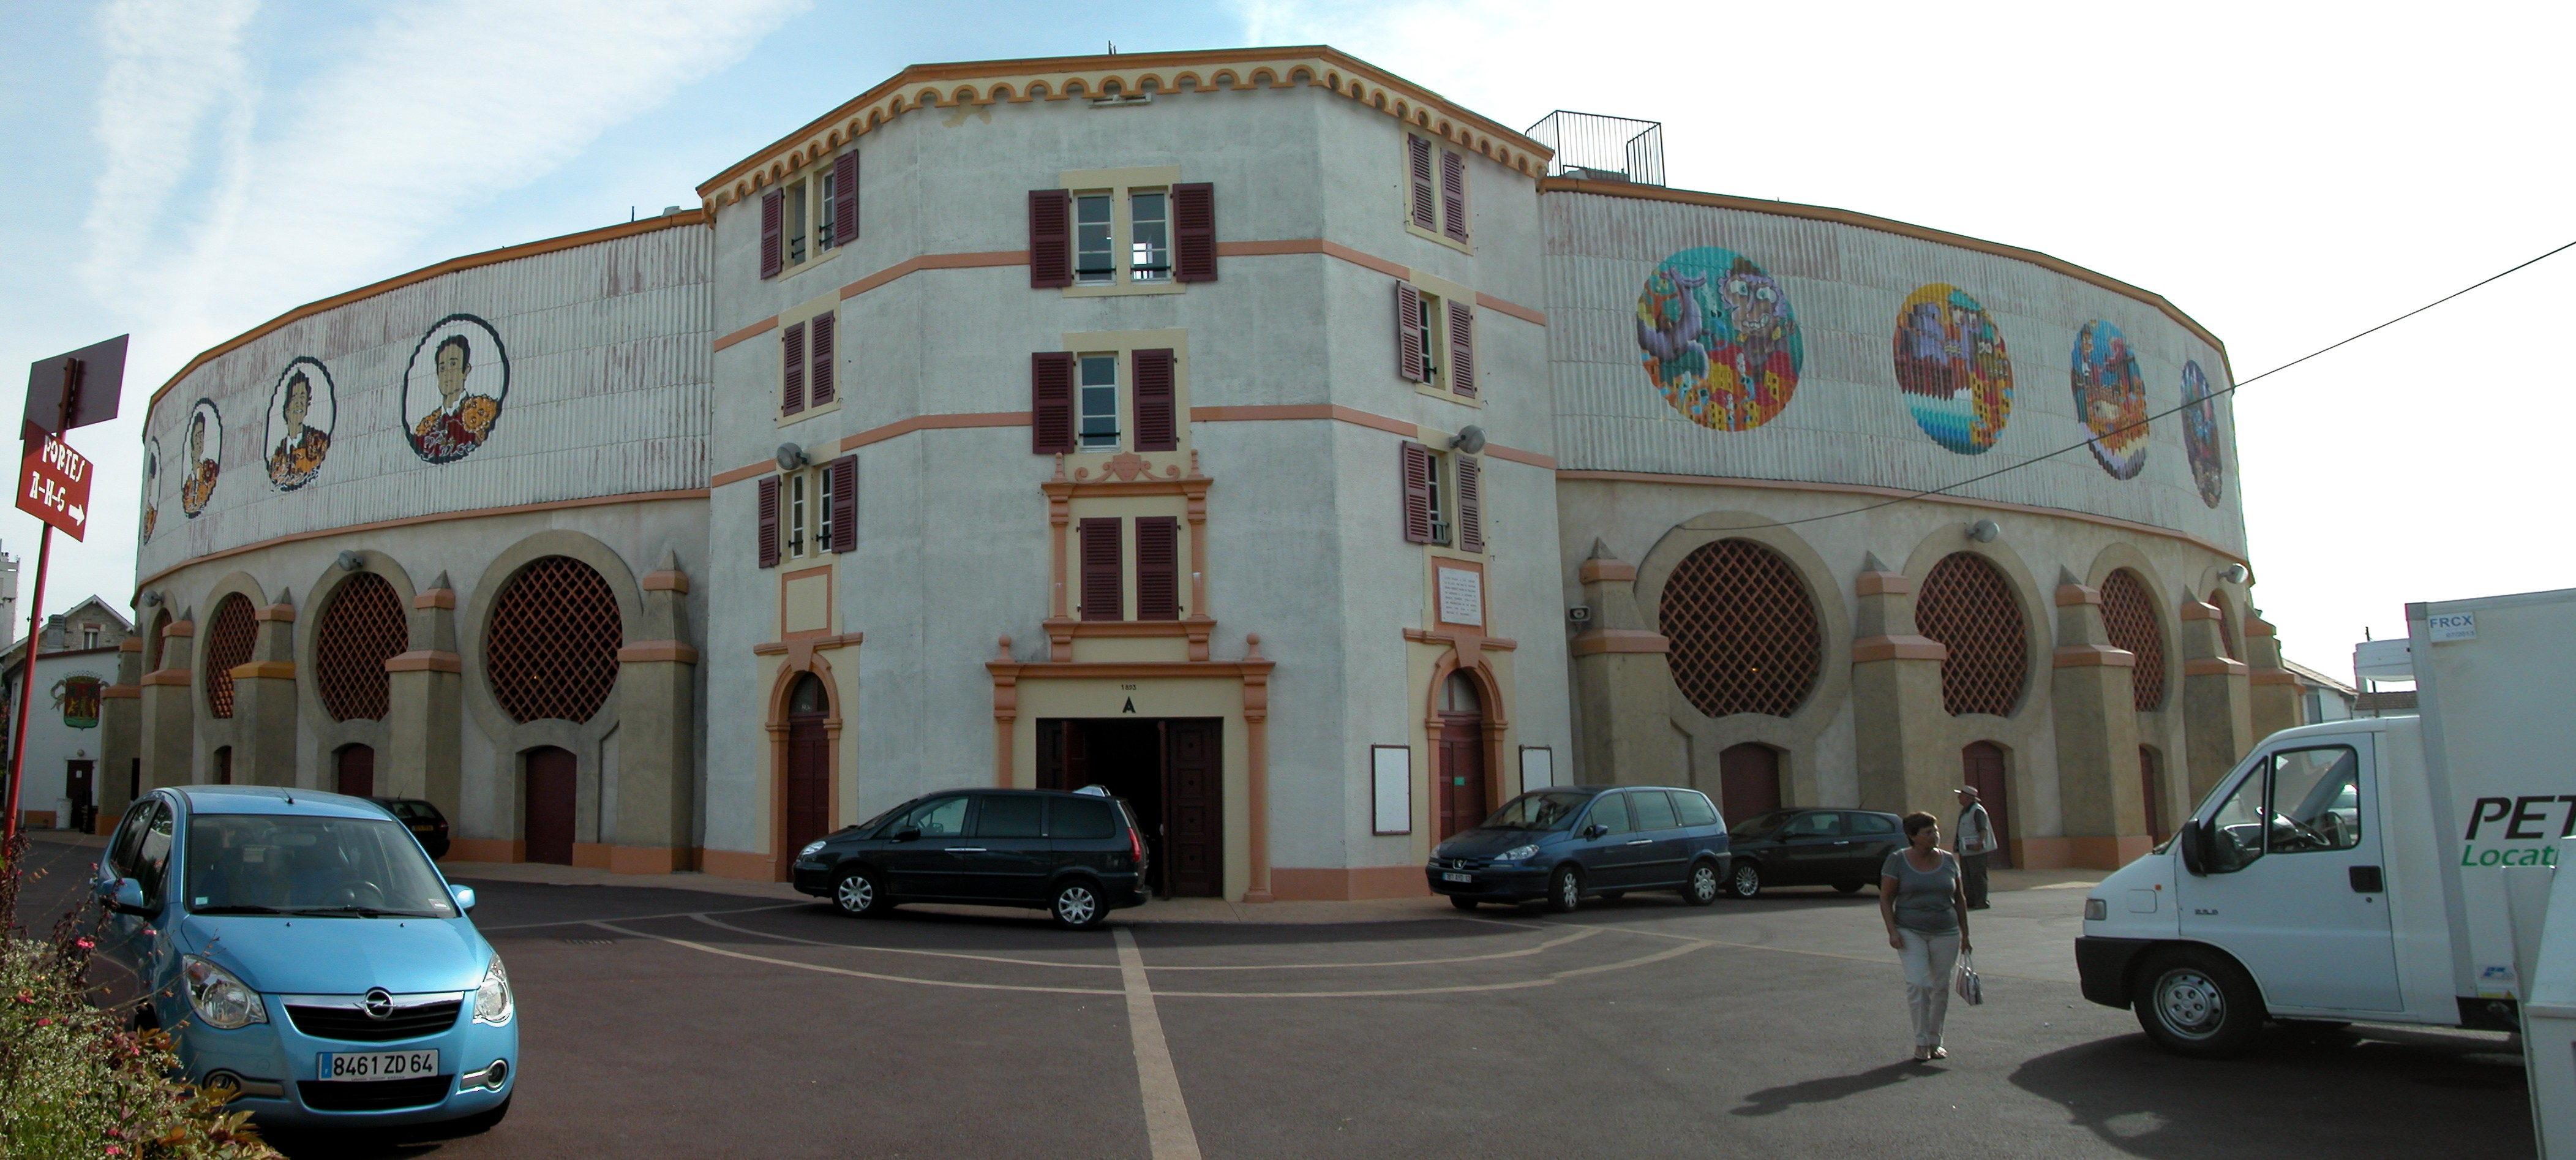 http://upload.wikimedia.org/wikipedia/commons/2/2d/Arenes_bayonne_exterieur.jpg